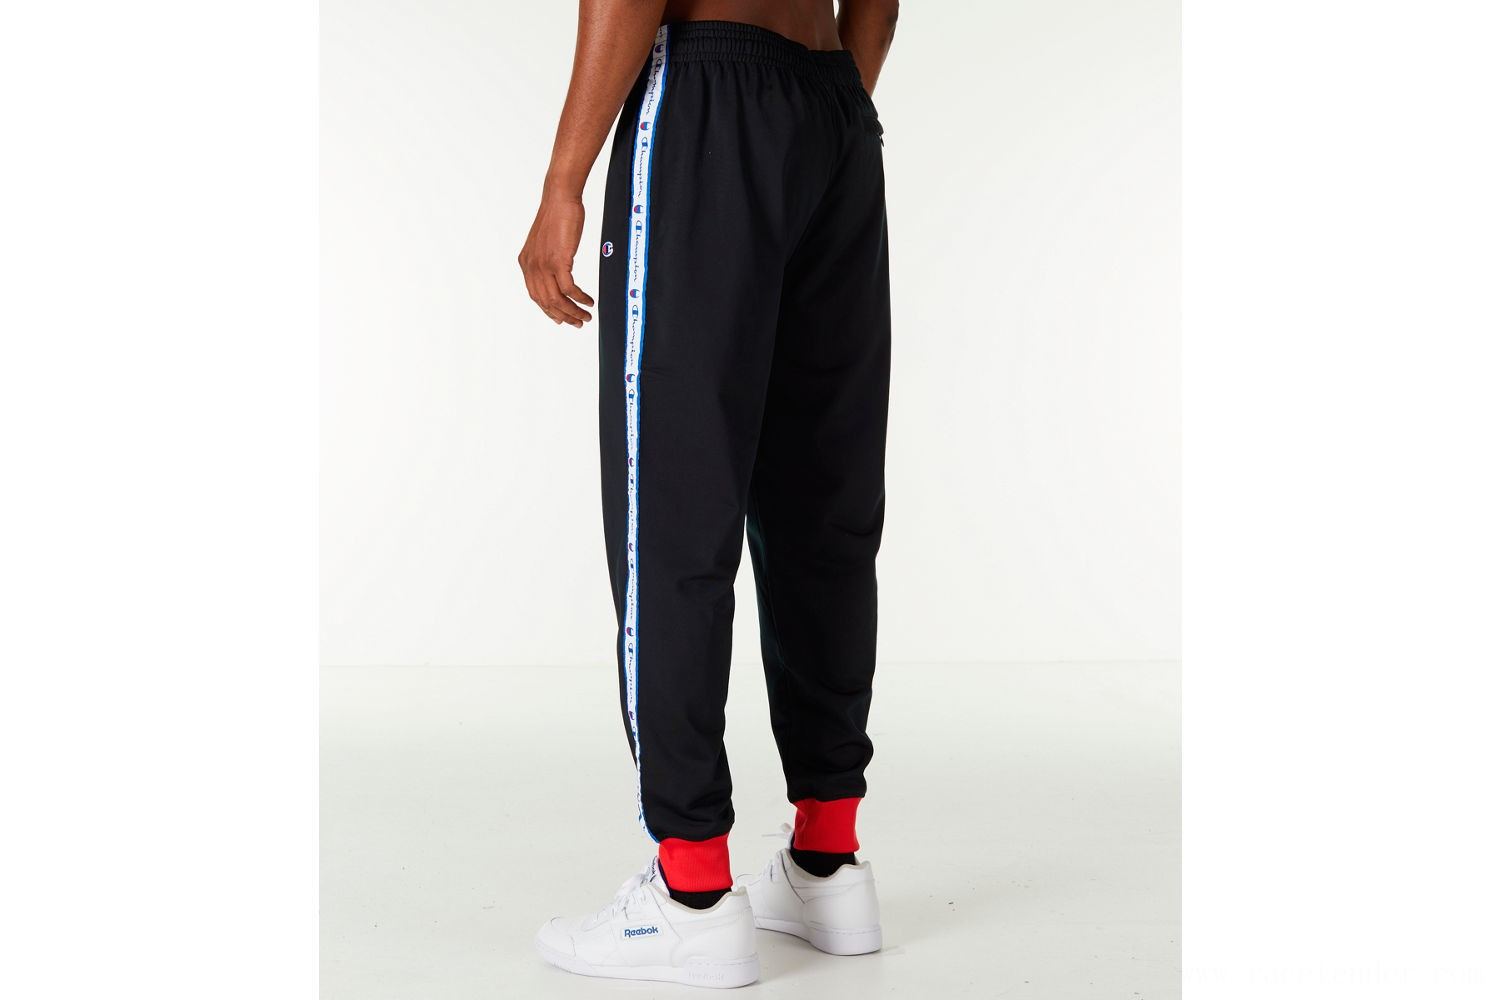 Champion Men's Side Tape Track Jogger Pants - Black/White/Red